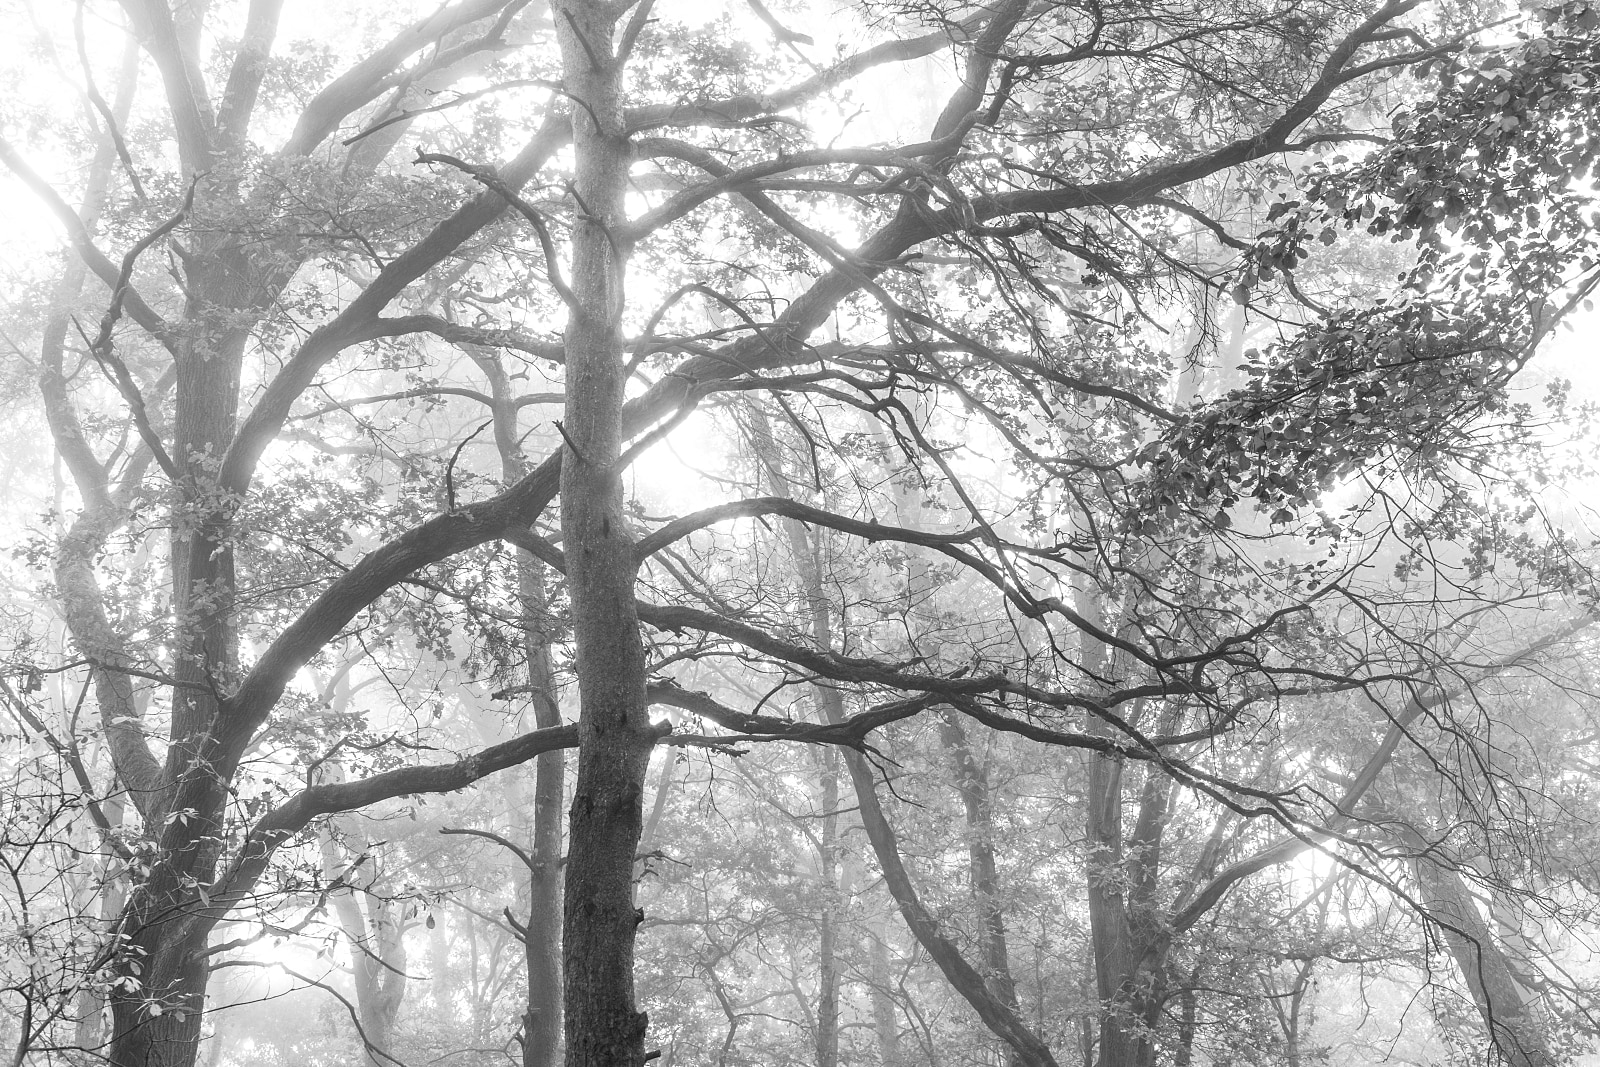 Tree branches in the morning fog